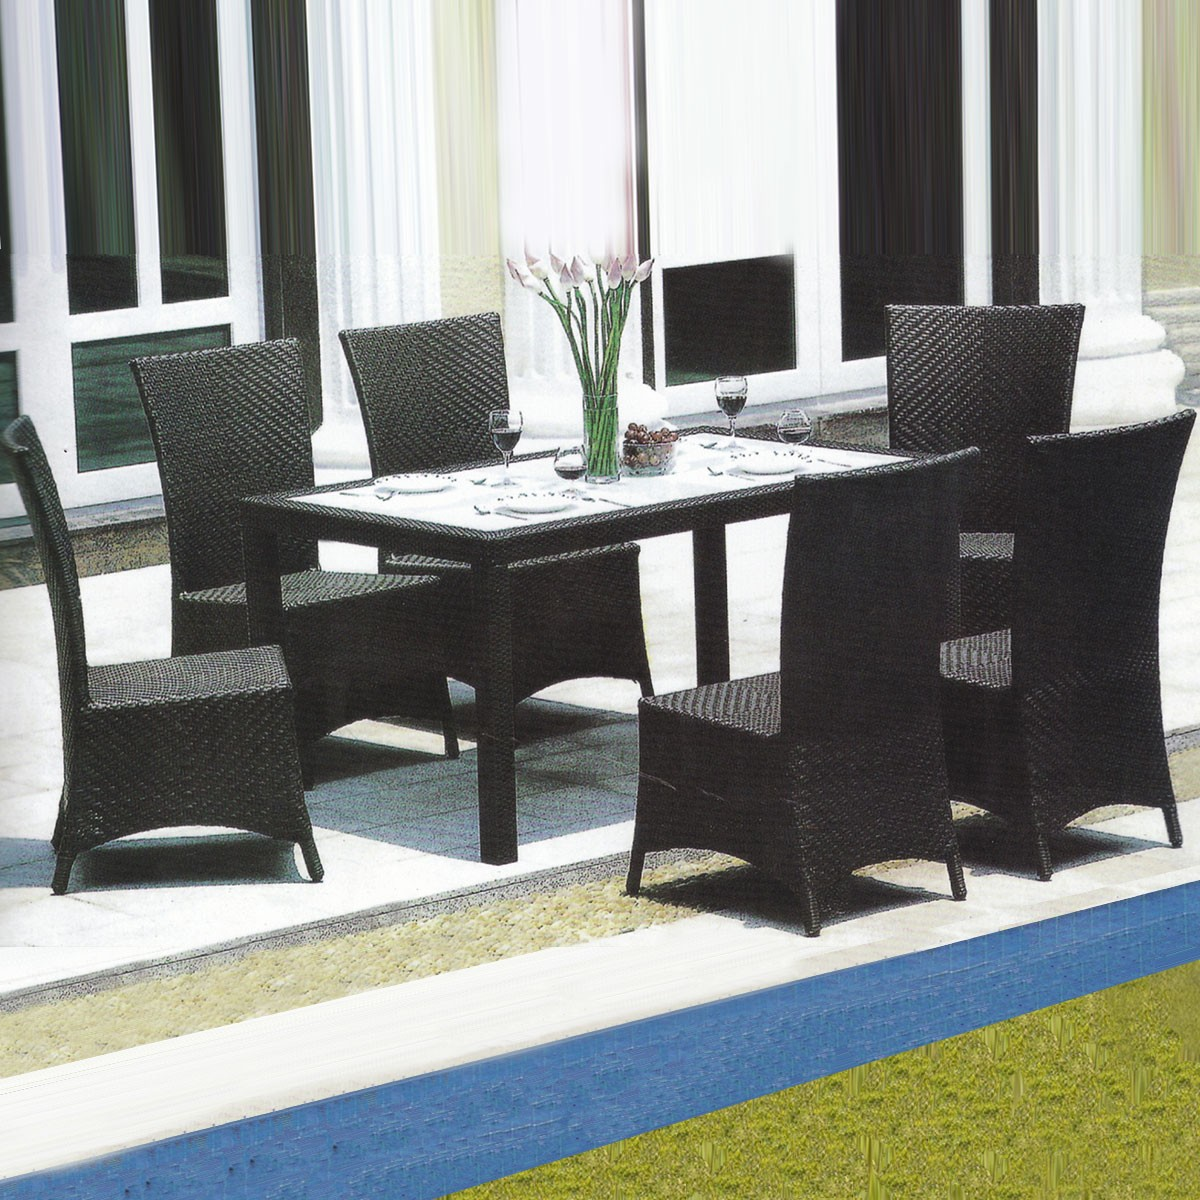 PE Rattan 7 Pieces Dining Set: 1 * Dining Table, 6 * Chair (